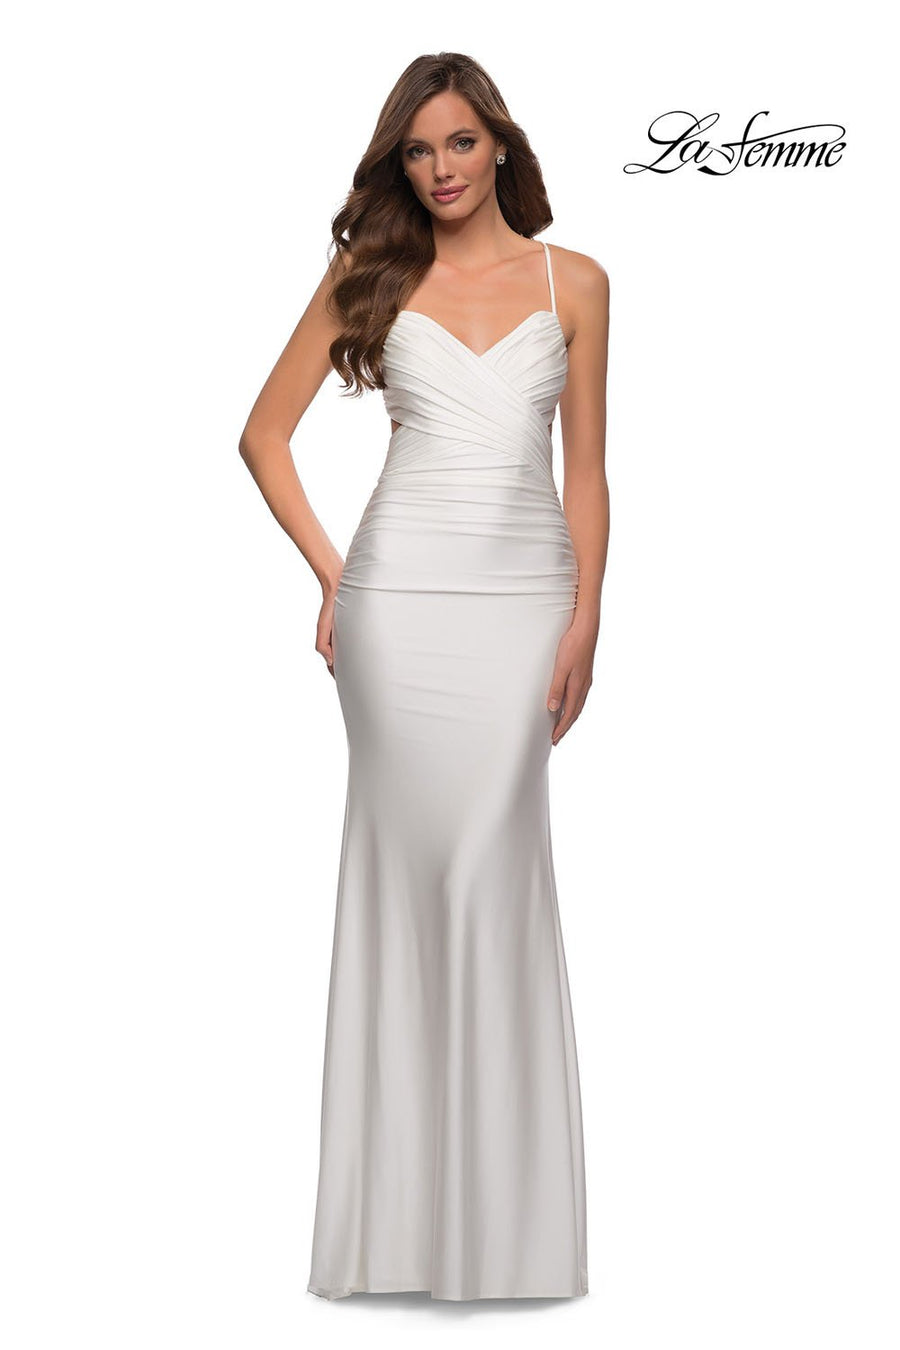 La Femme 29606 prom dress images.  La Femme 29606 is available in these colors: Dark Berry, Royal Blue, White.